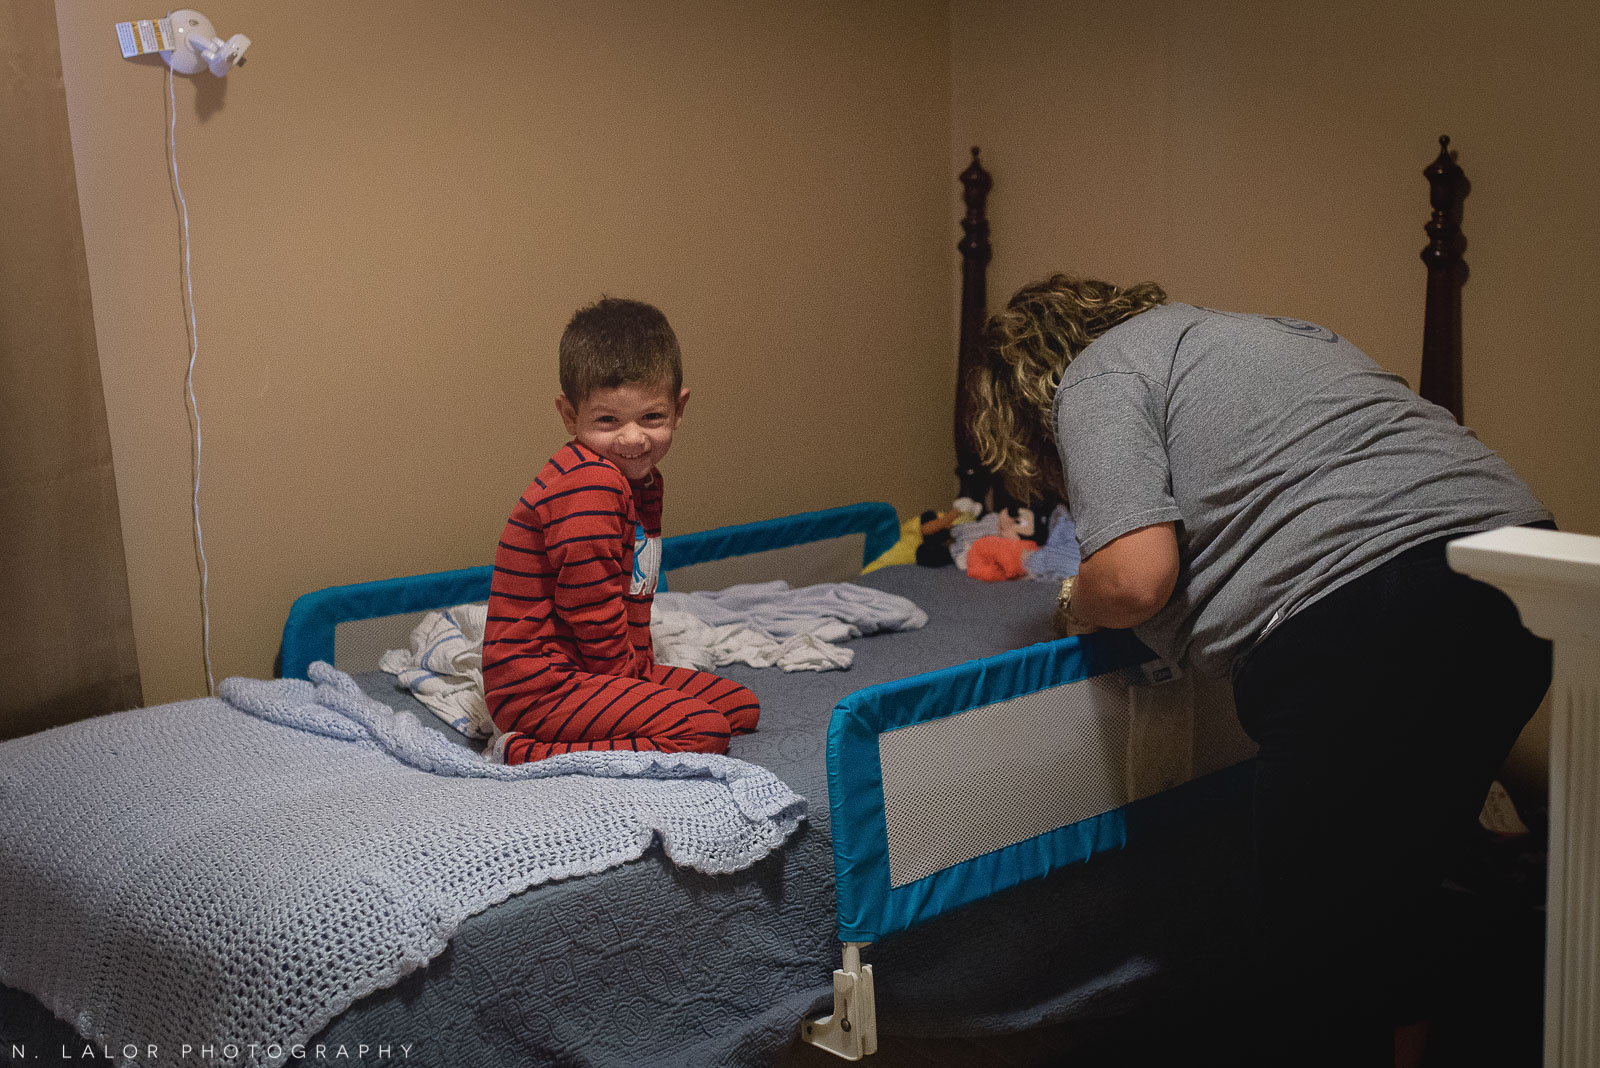 Early morning wakeup for a 4-year old. Documentary photo by N. Lalor Photography.